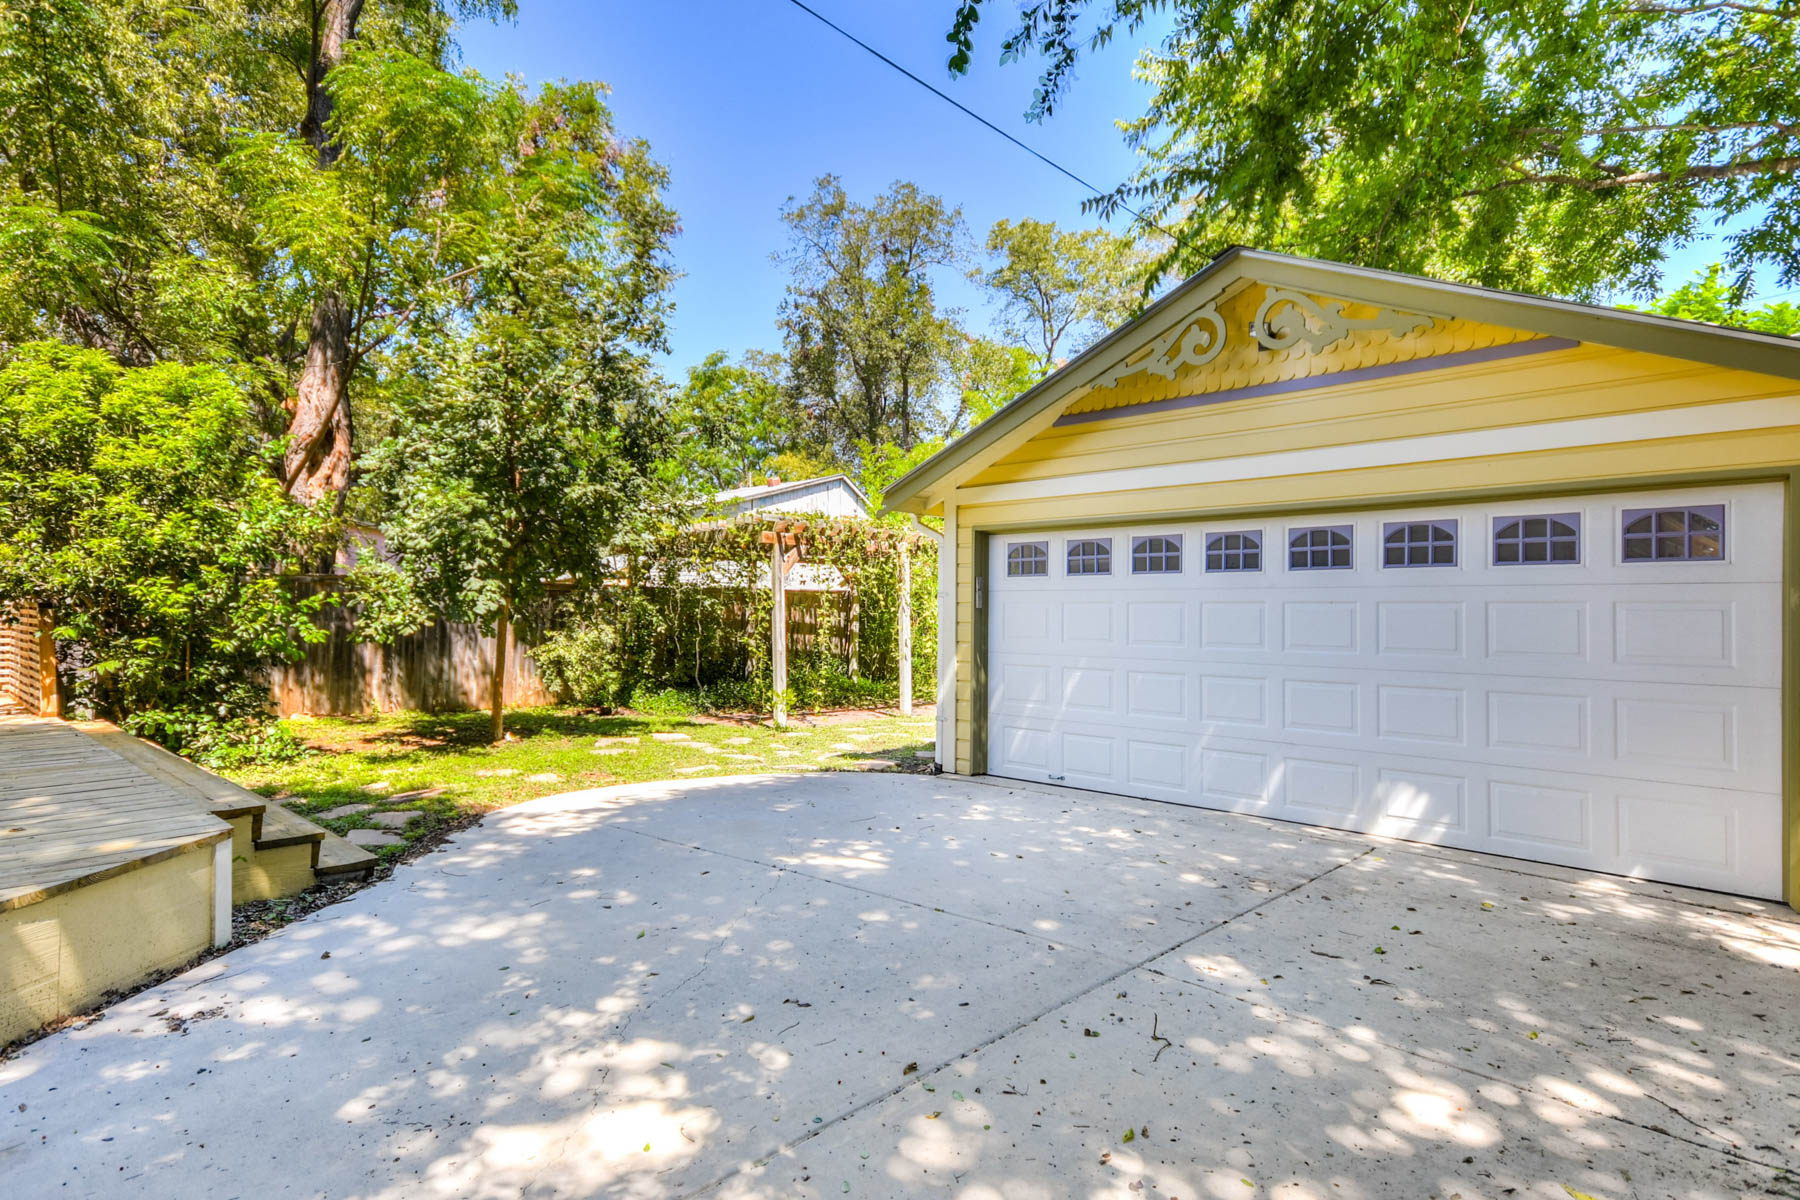 Additional photo for property listing at Picture Perfect King William Victorian Cottage 422 Mission St San Antonio, Texas 78210 Estados Unidos